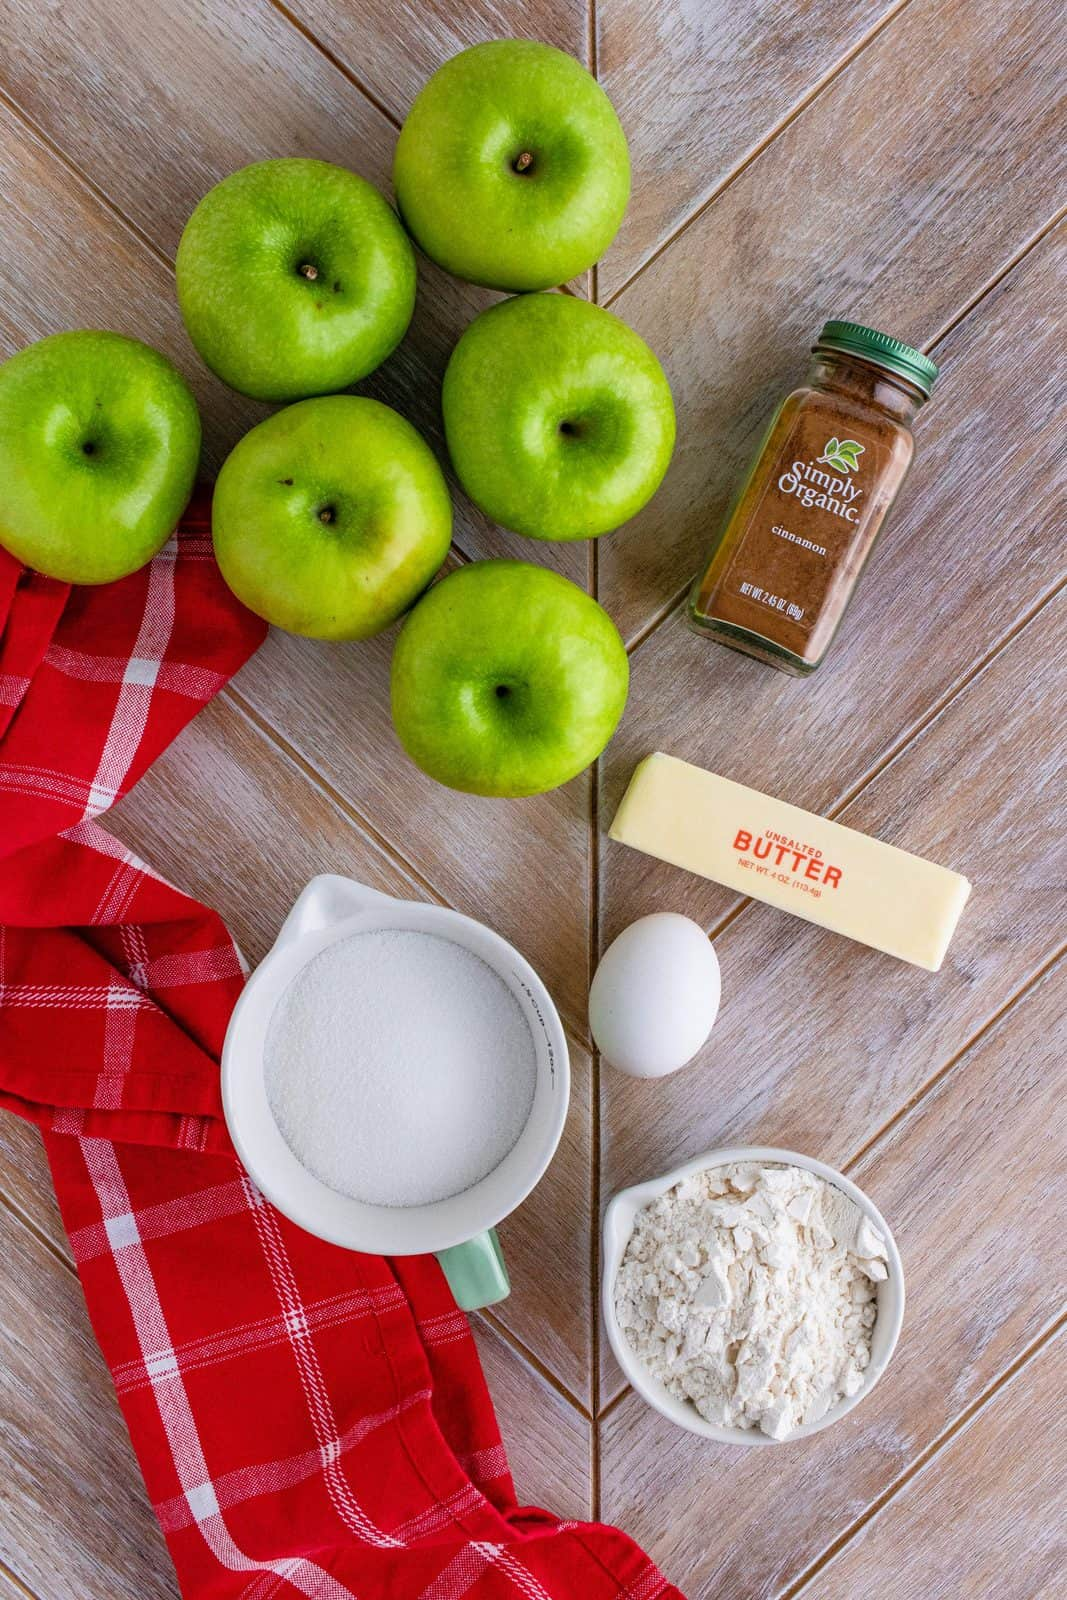 Ingredients needed: apples, granulated sugar, cinnamon, butter, all-purpose flour and egg.